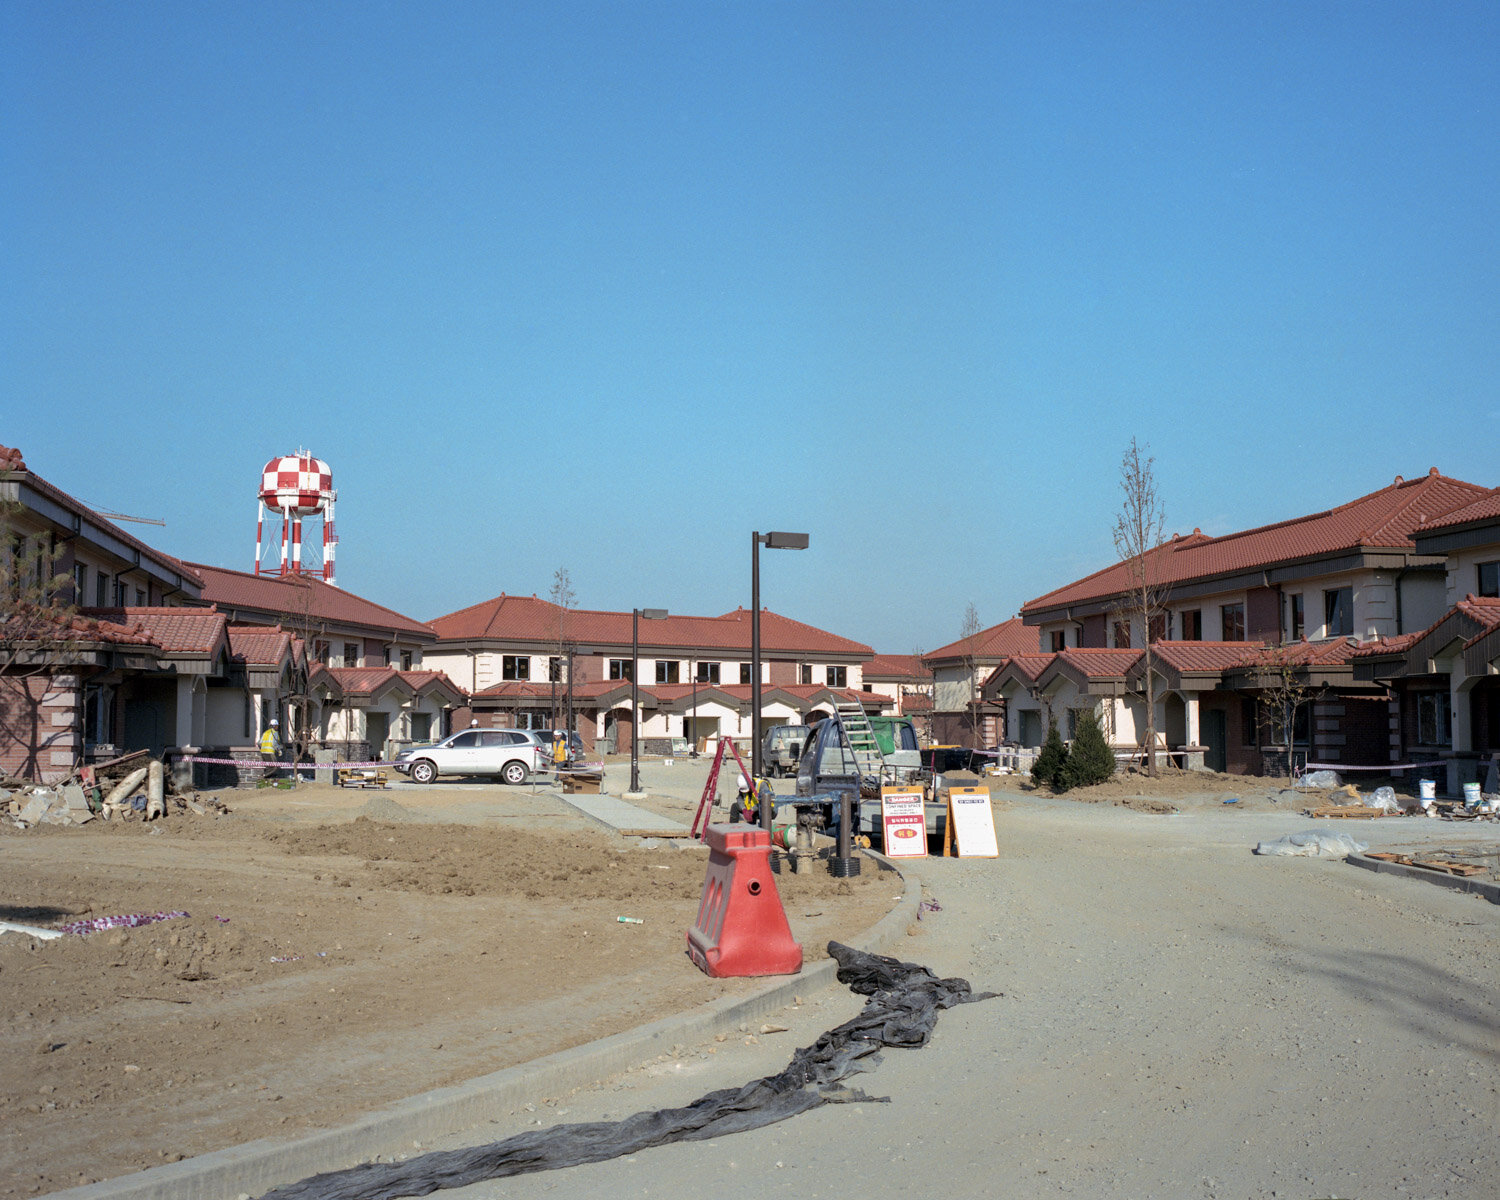 Construction of new villas inside Camp humphrey, the newly build american military base in South Korea.